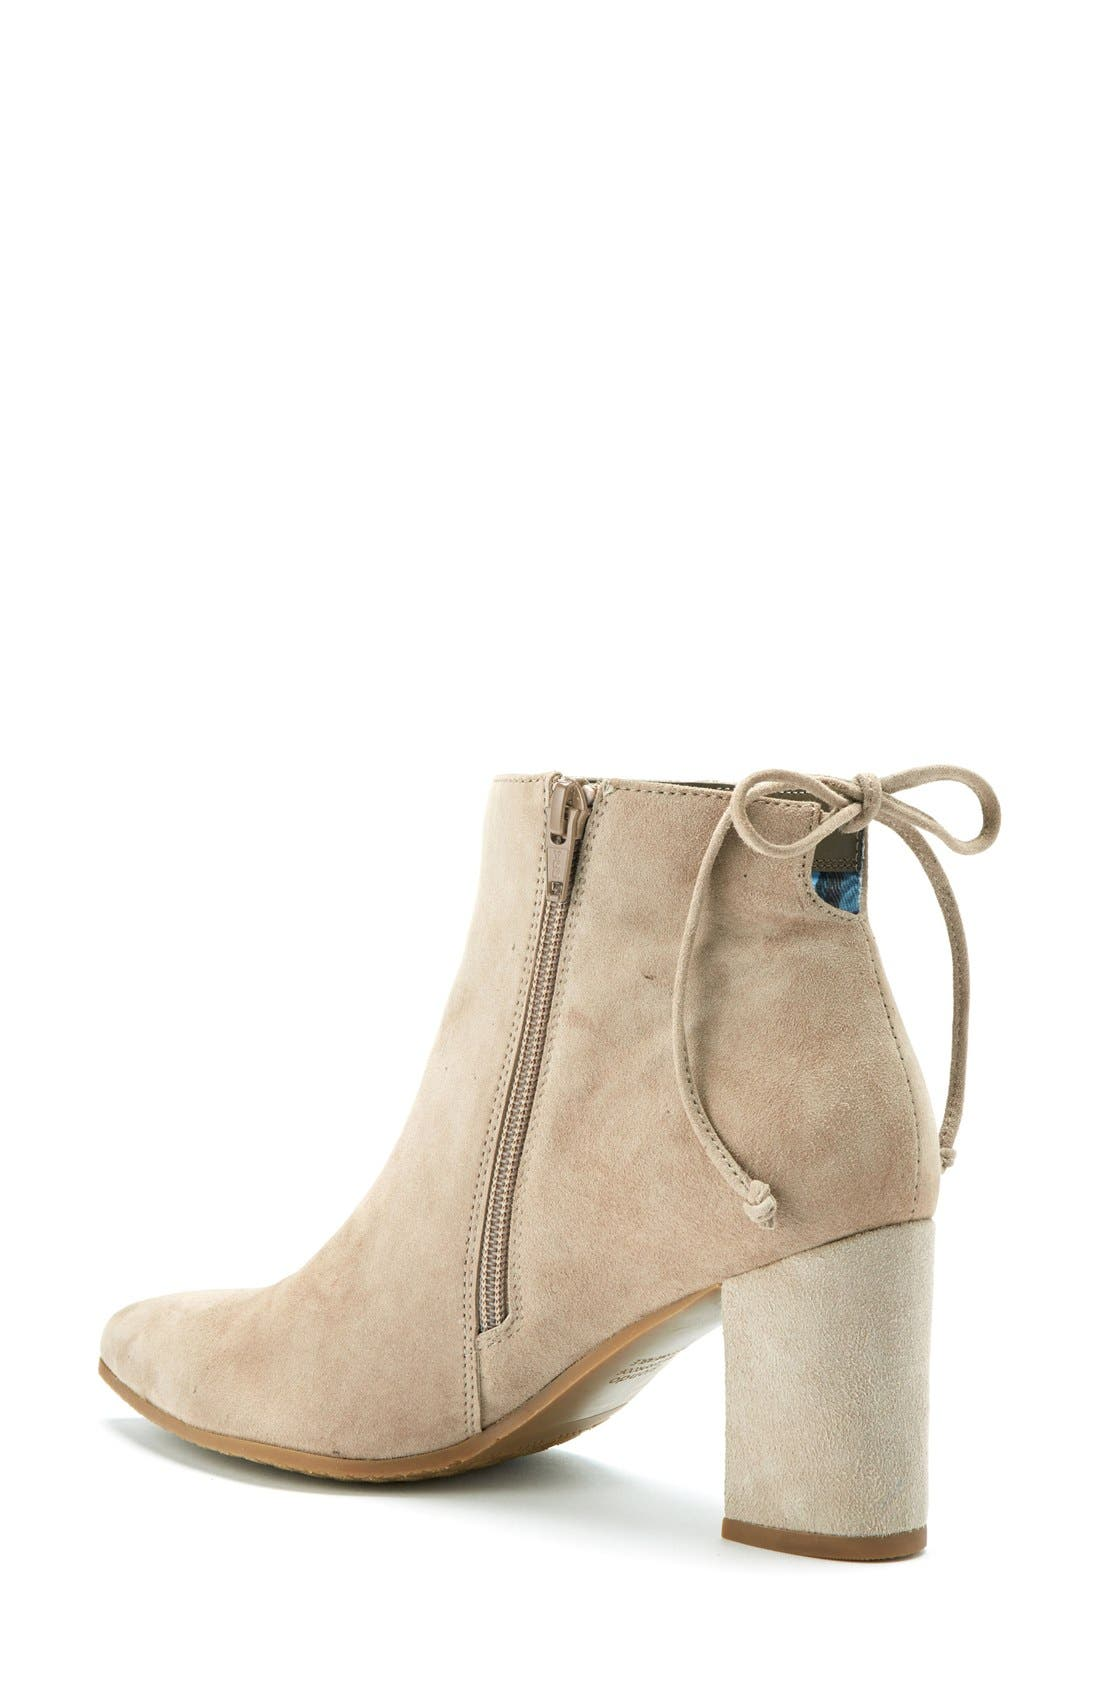 Tiana Waterproof Pointy Toe Bootie,                             Alternate thumbnail 4, color,